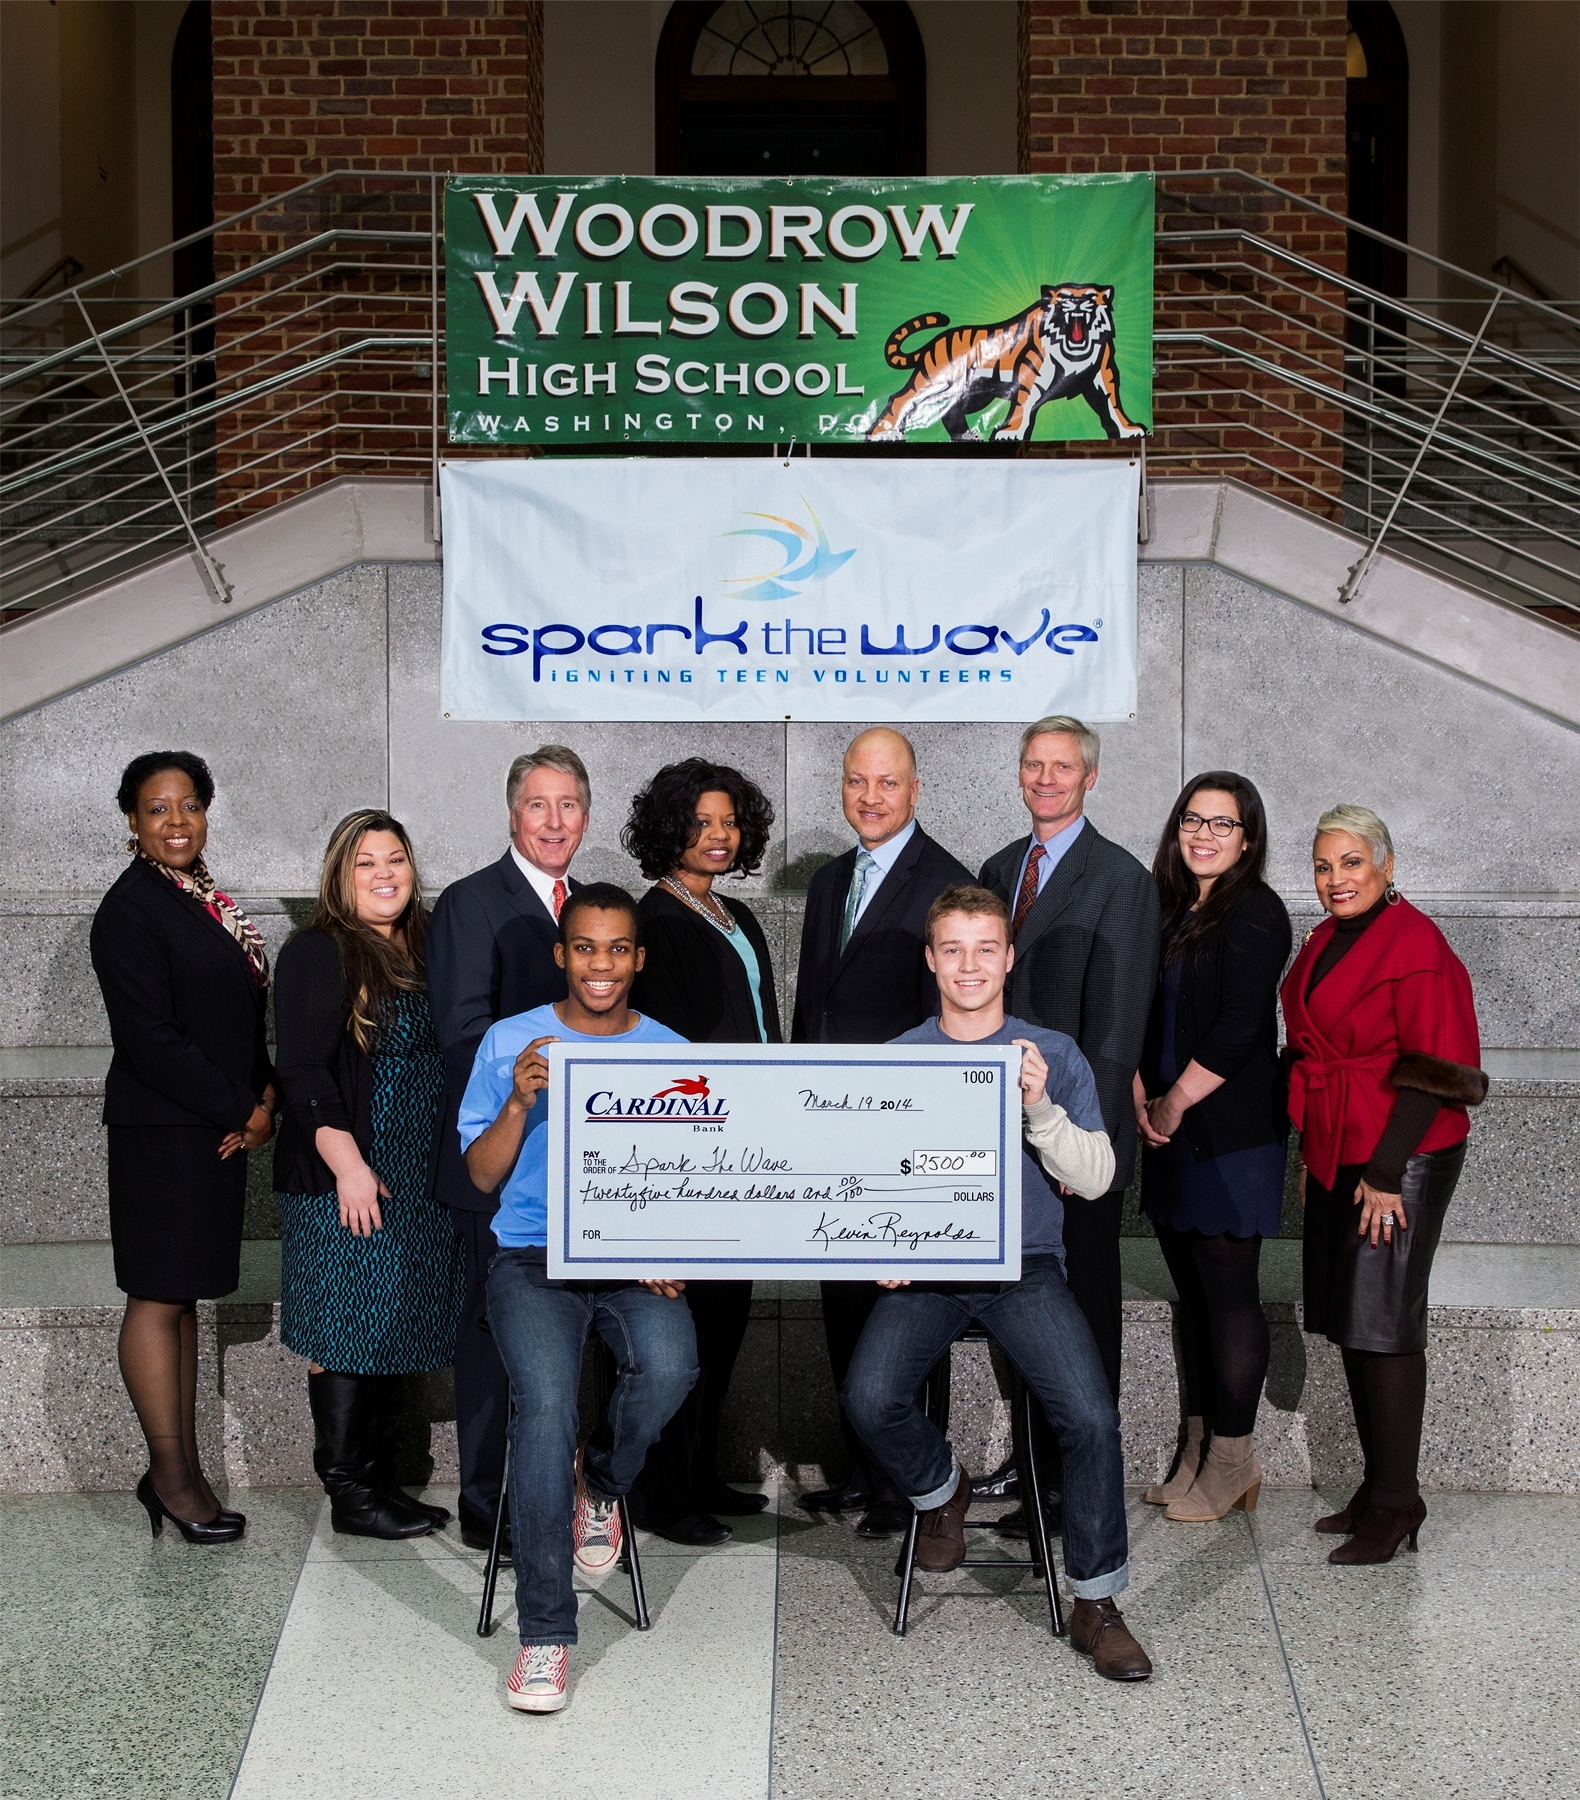 (L-R): Cardinal Banking Office Manager Charlene Davis; Woodrow Wilson High School After School Program Coordinator, Sheilla Hara; Cardinal Bank Regional President Kevin Reynolds; Woodrow Wilson High School Librarian, Pamela Lipscomb-Gardner; Woodrow Wilson Assistant Principal, Gregory Bargeman; Spark the Wave President and Founder, Bill Gallagher; Spark the Wave Director of Wave Week and Recruitment, Laura Payne; former DC Chamber of Commerce president and CEO, Barbara Lang, with students from Woodrow Wilson High School. (Photo: Galen Photography)